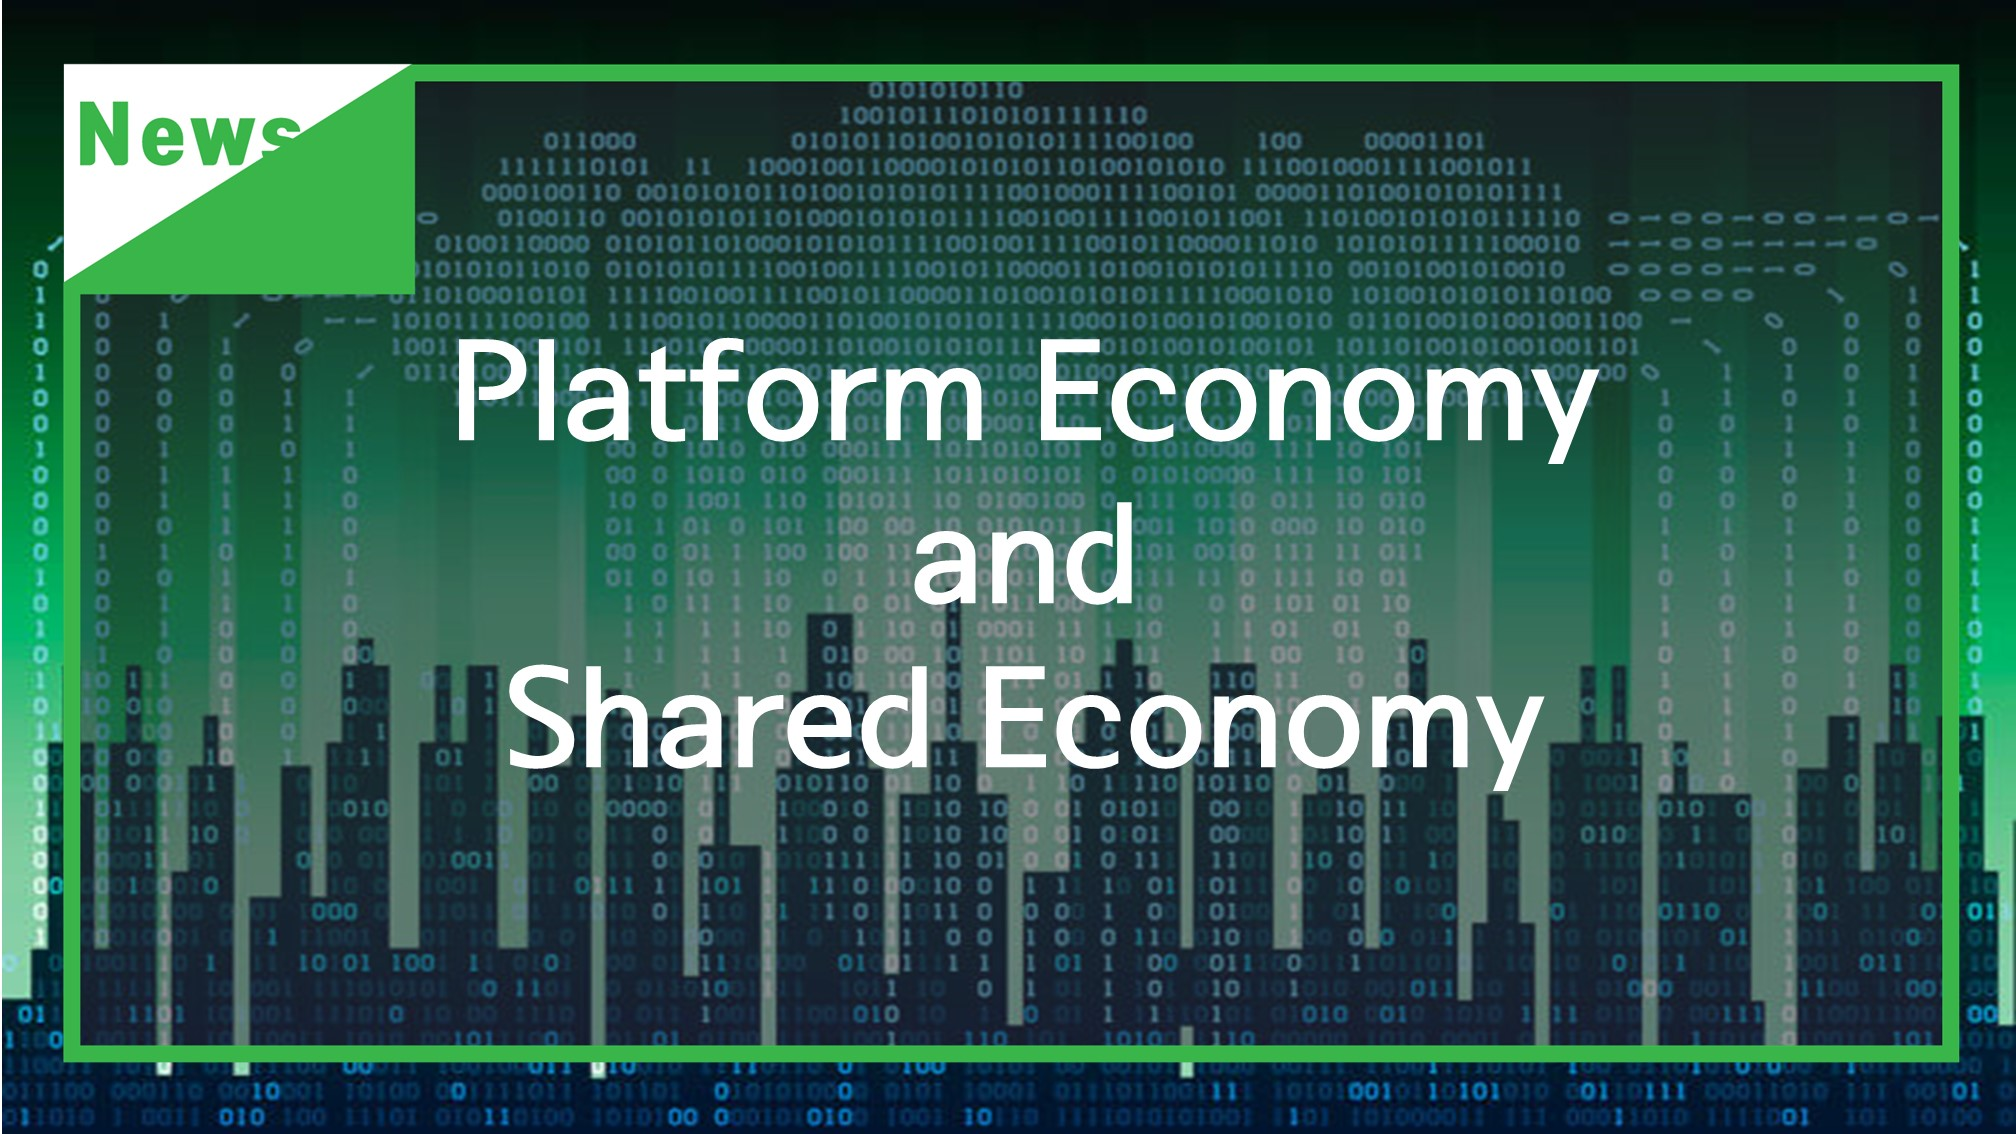 [News] Platform Economy and Shared Economy